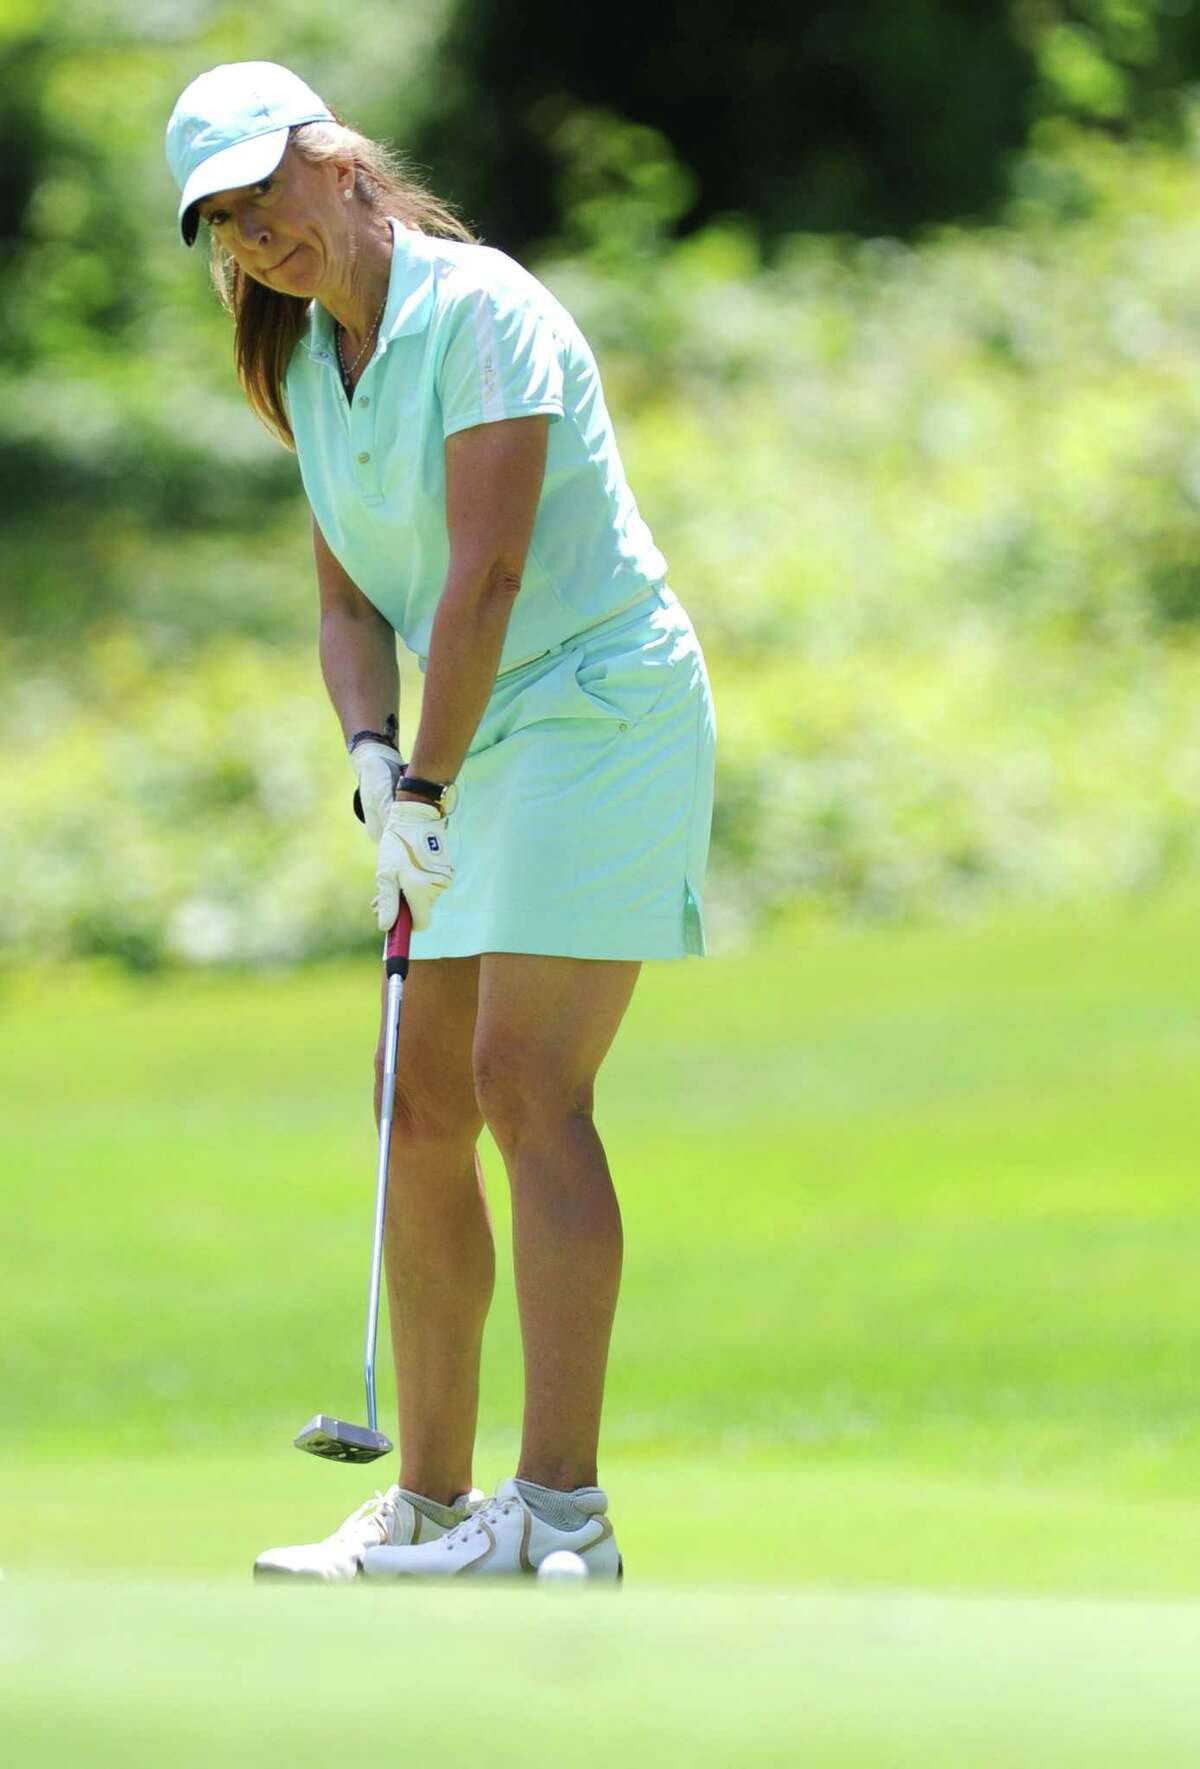 Laurabeth Rodgers putts during the Greenwich Women's Town Golf Tournament at Griffith E. Harris Golf Course in Greenwich, Conn. Monday, June 26, 2017. Catherine McEvoy won the townwide division, Laurabeth Rodgers and Irene Lok tied the senior division, and Yanna Saari won the super-senior division.